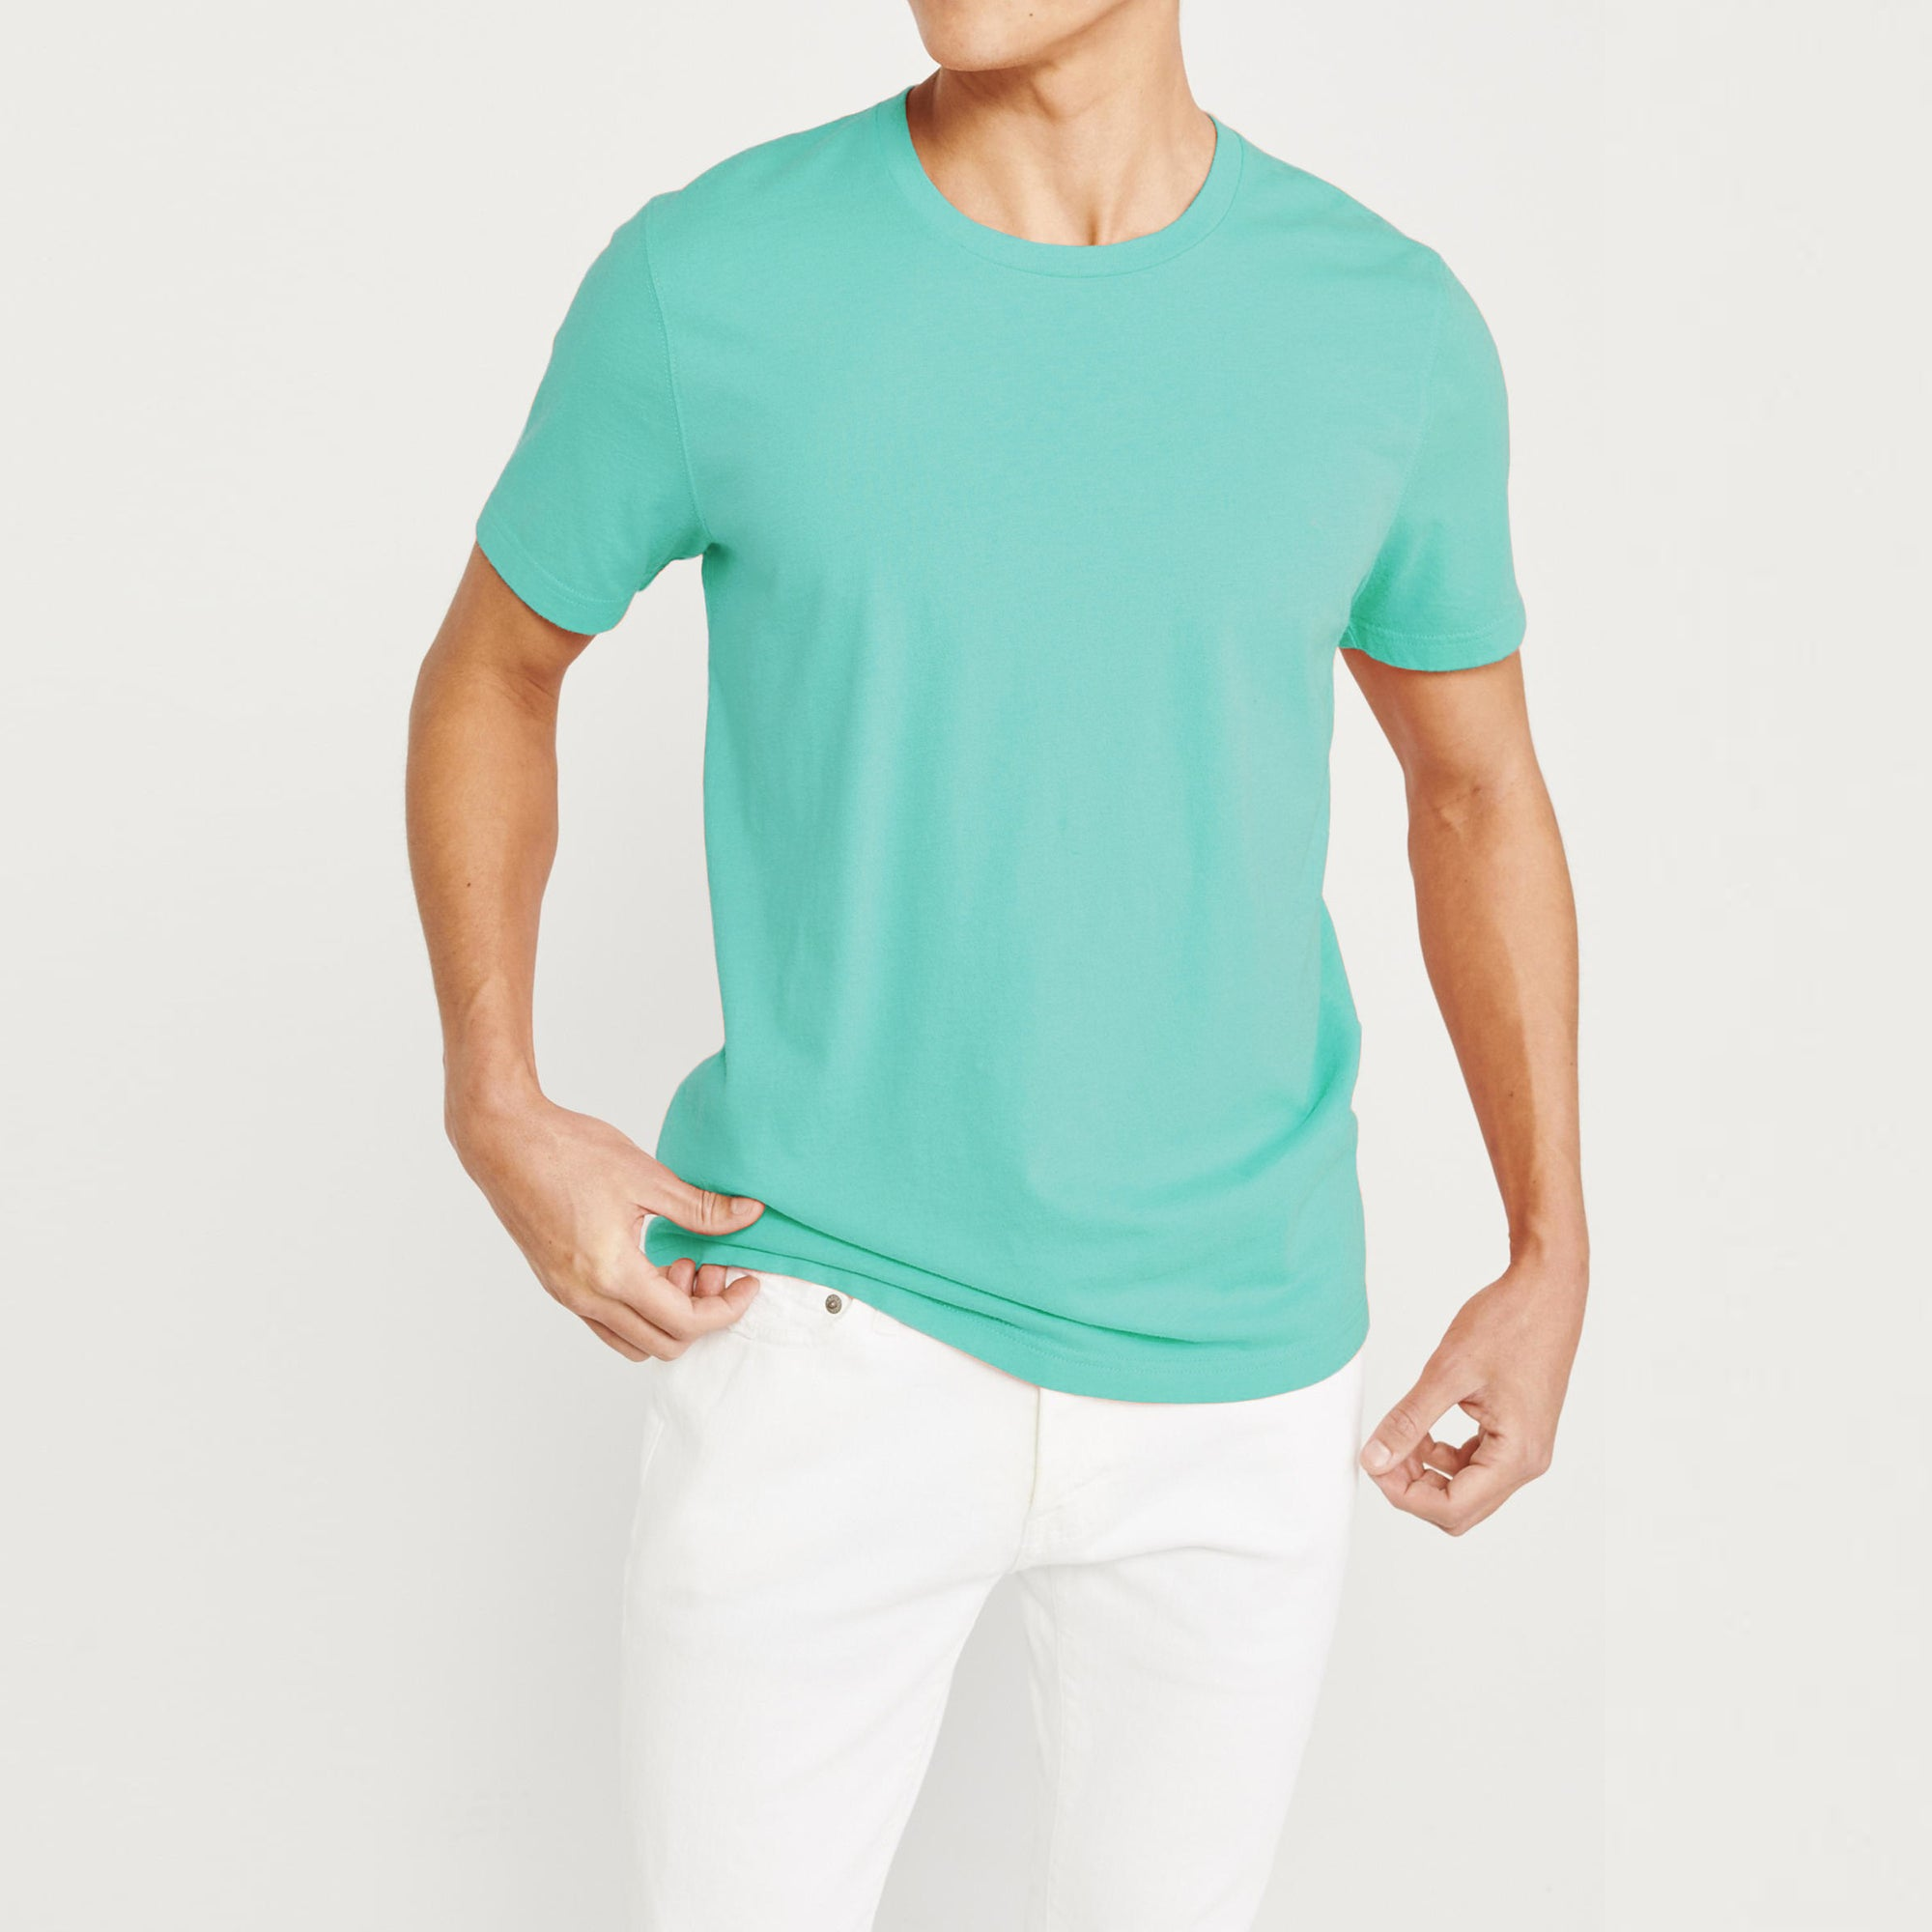 Architect Crew Neck Half Sleeve Tee Shirt For Men-Sea Green-NA8263